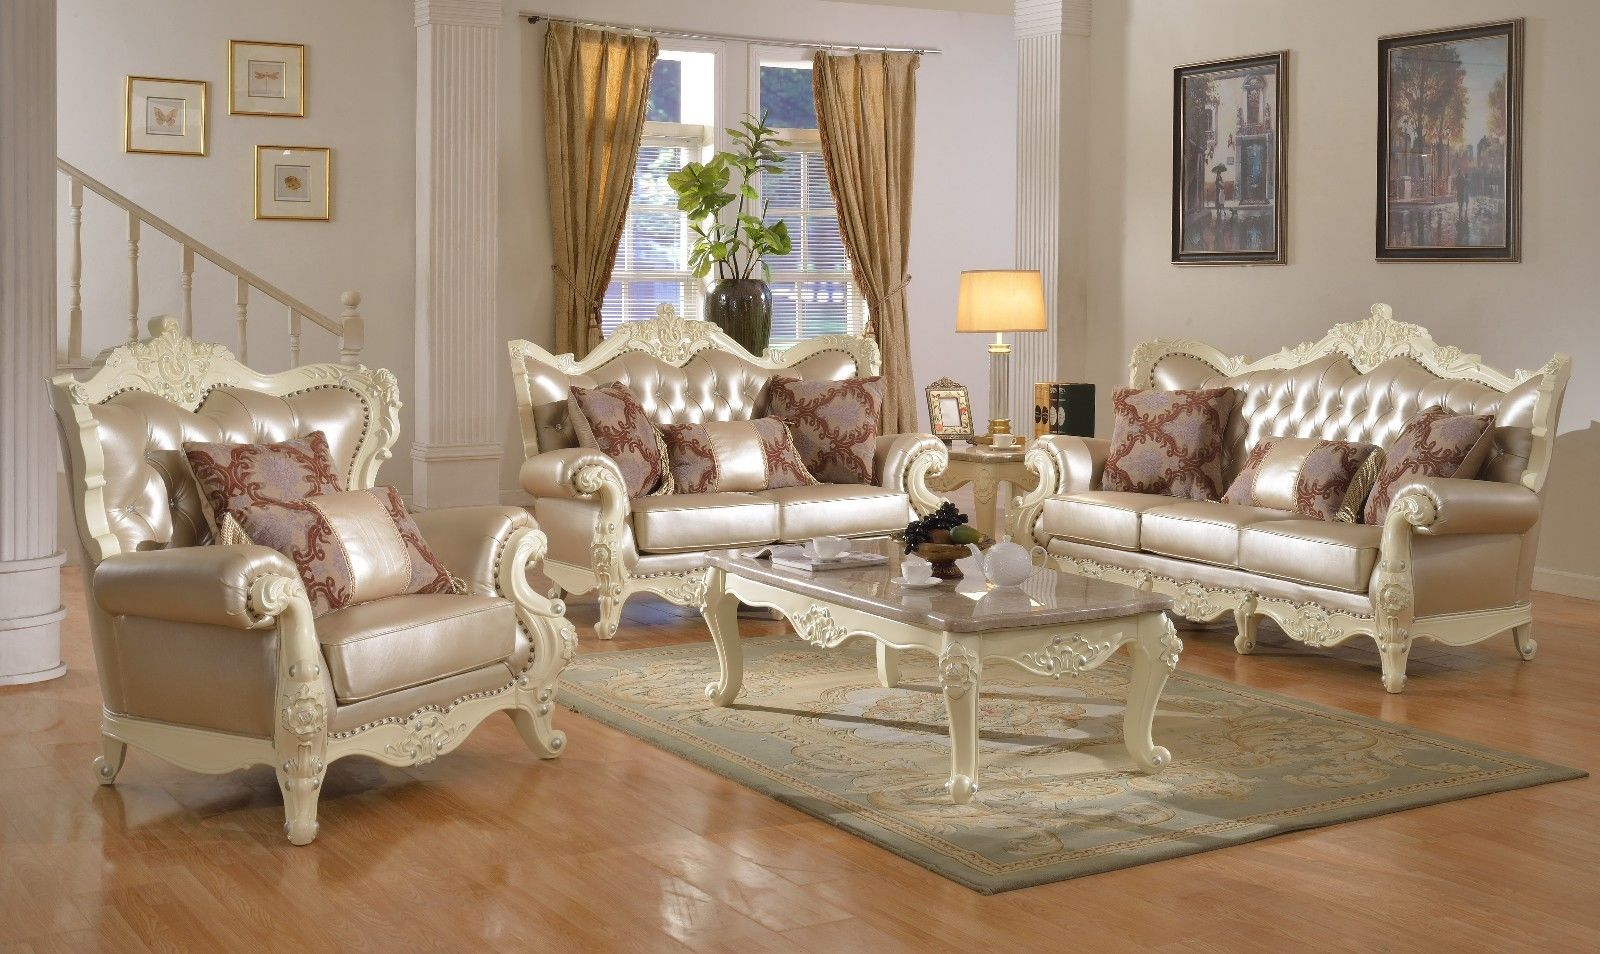 Meridian 674 Bonded Living Room Sofa Set 3pc. Rich Pearl White Traditional Style